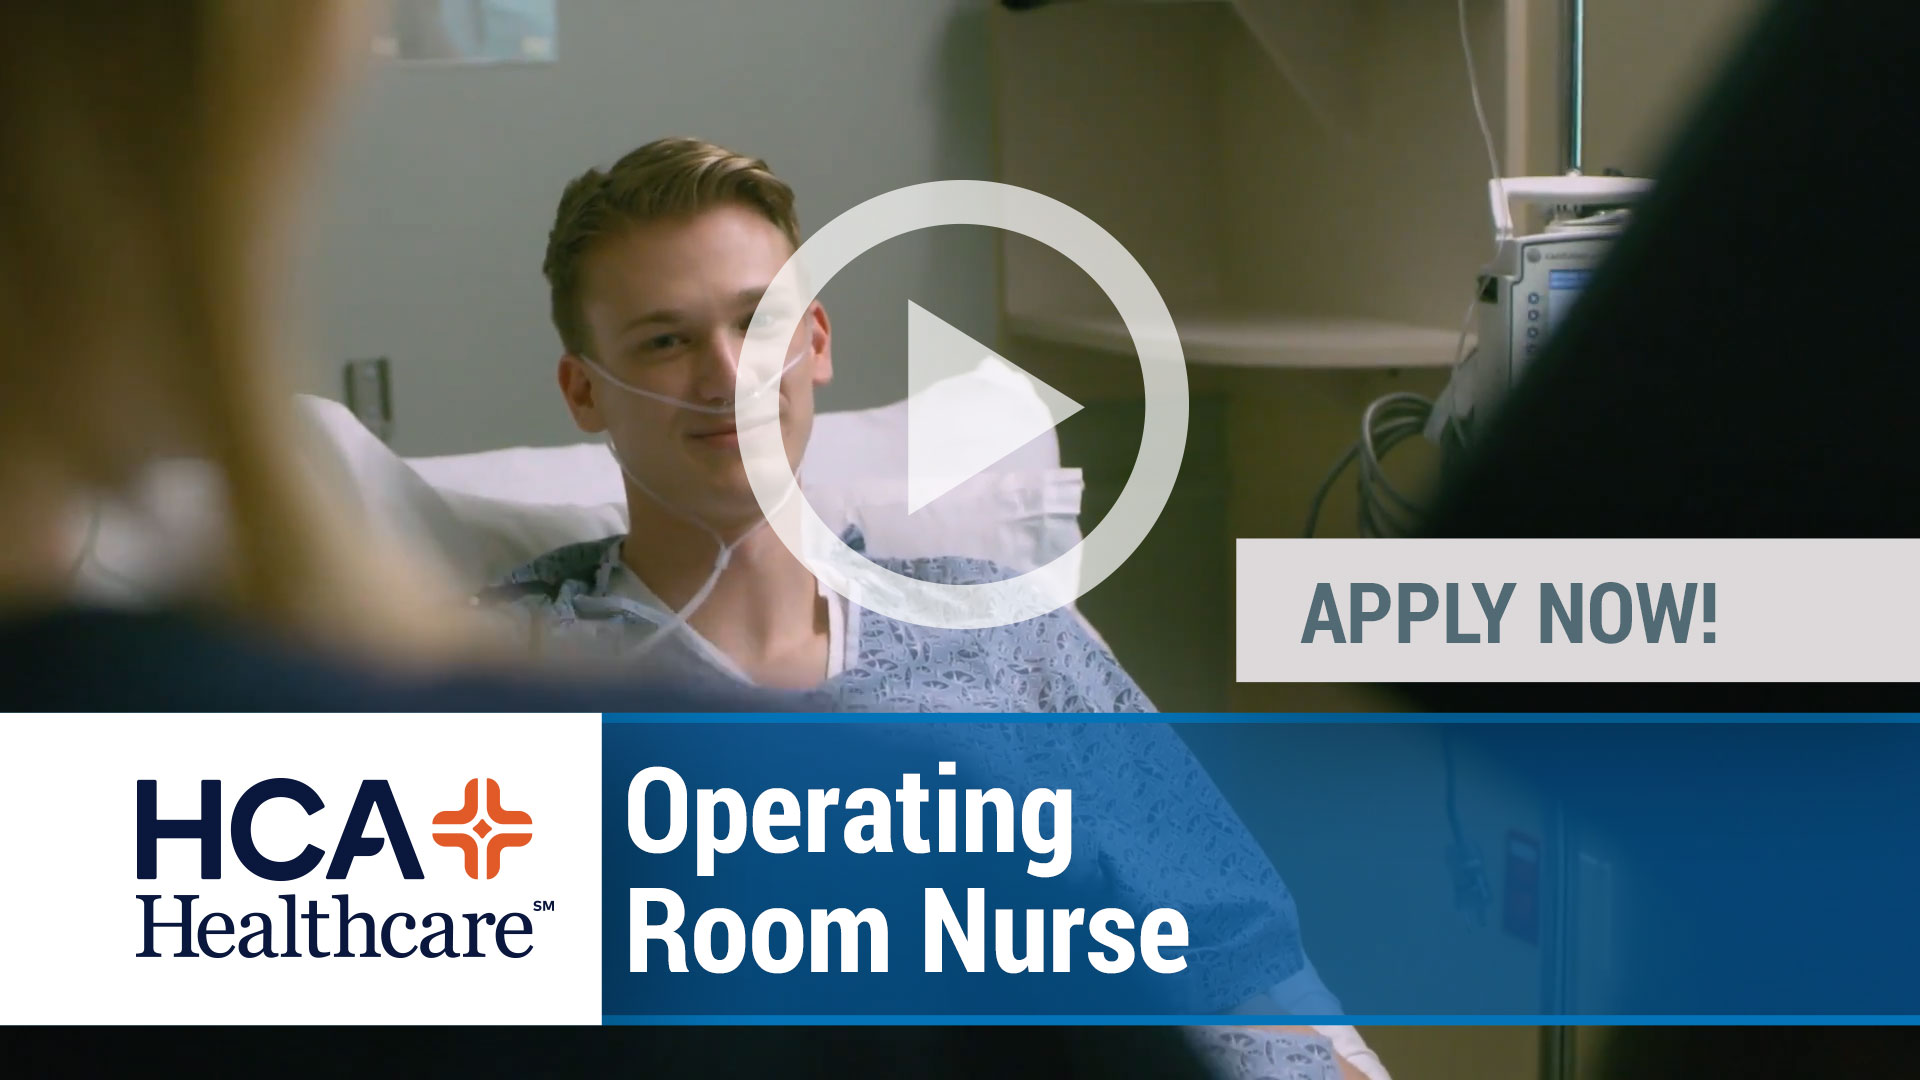 Watch our careers video for available job opening Operating Room Nurse in Idaho Falls, Idaho